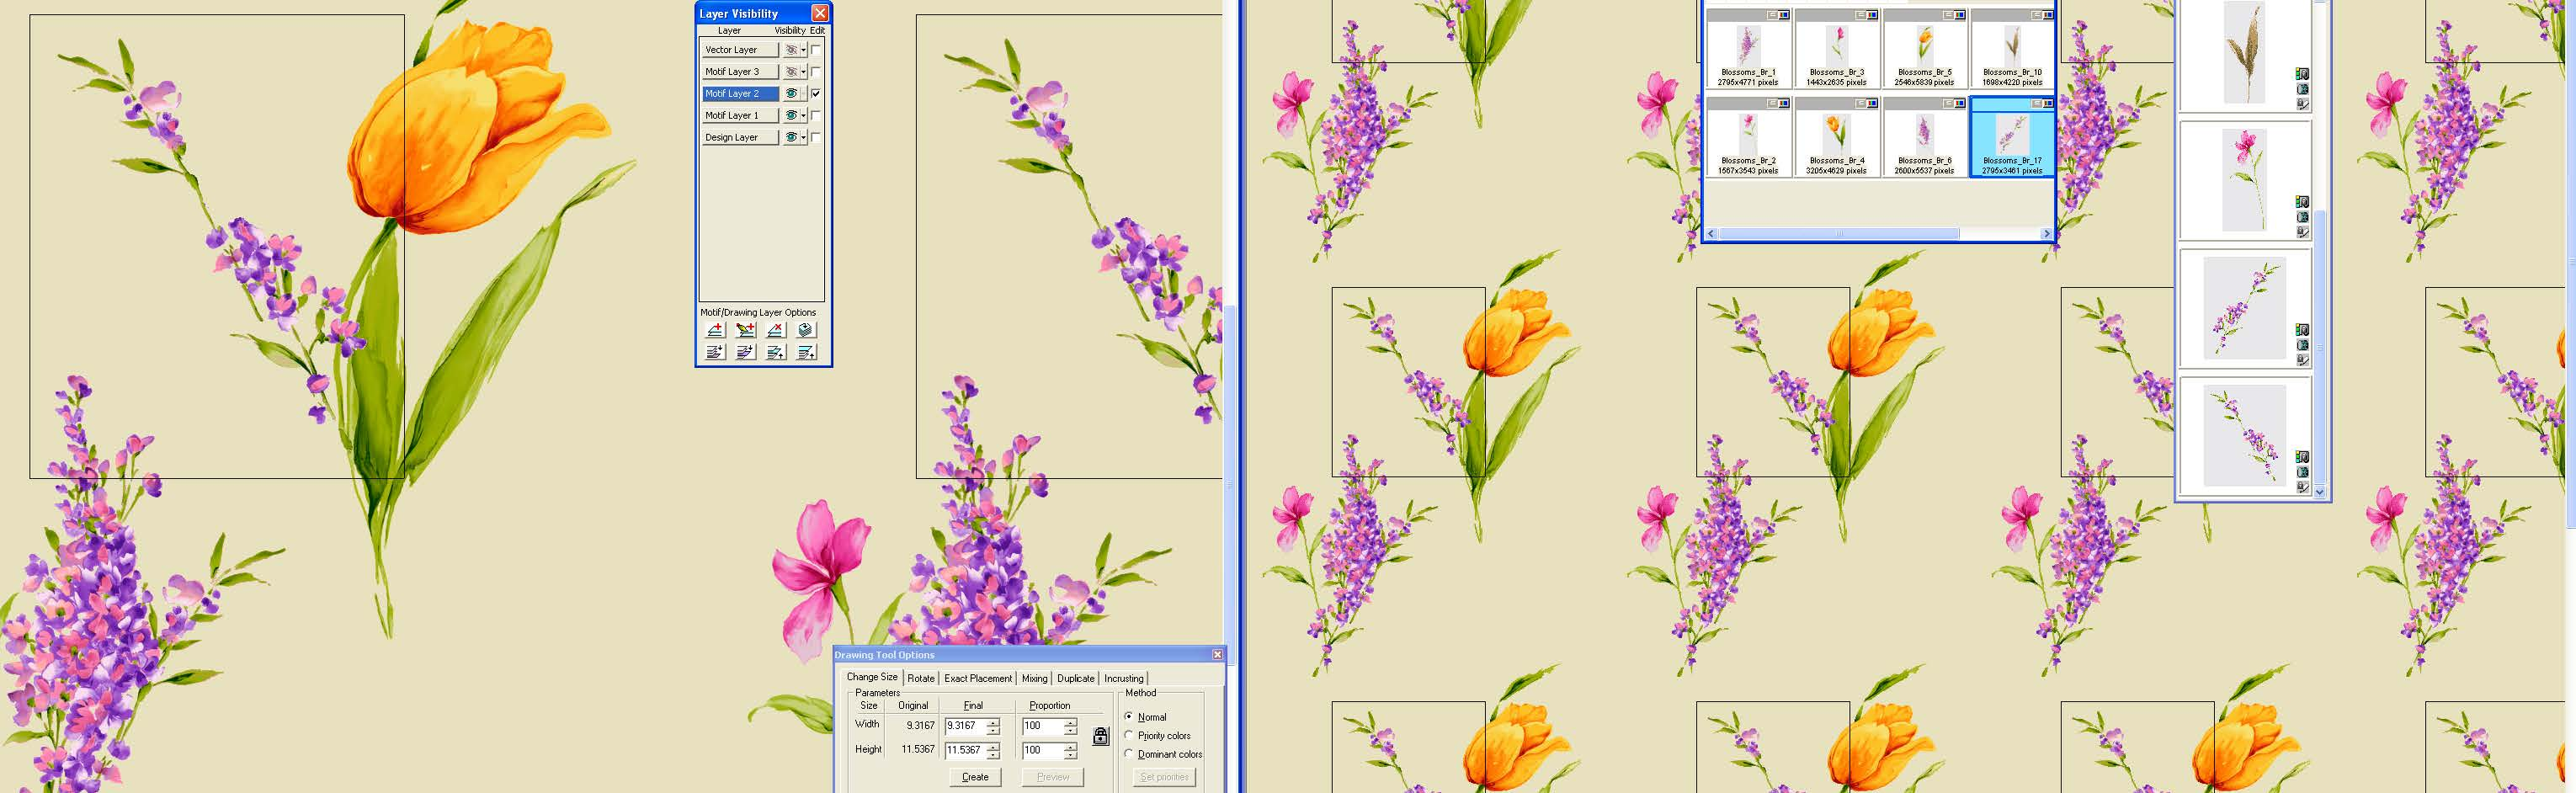 screen shot of a dual/split screen designing on layers with various object libraries